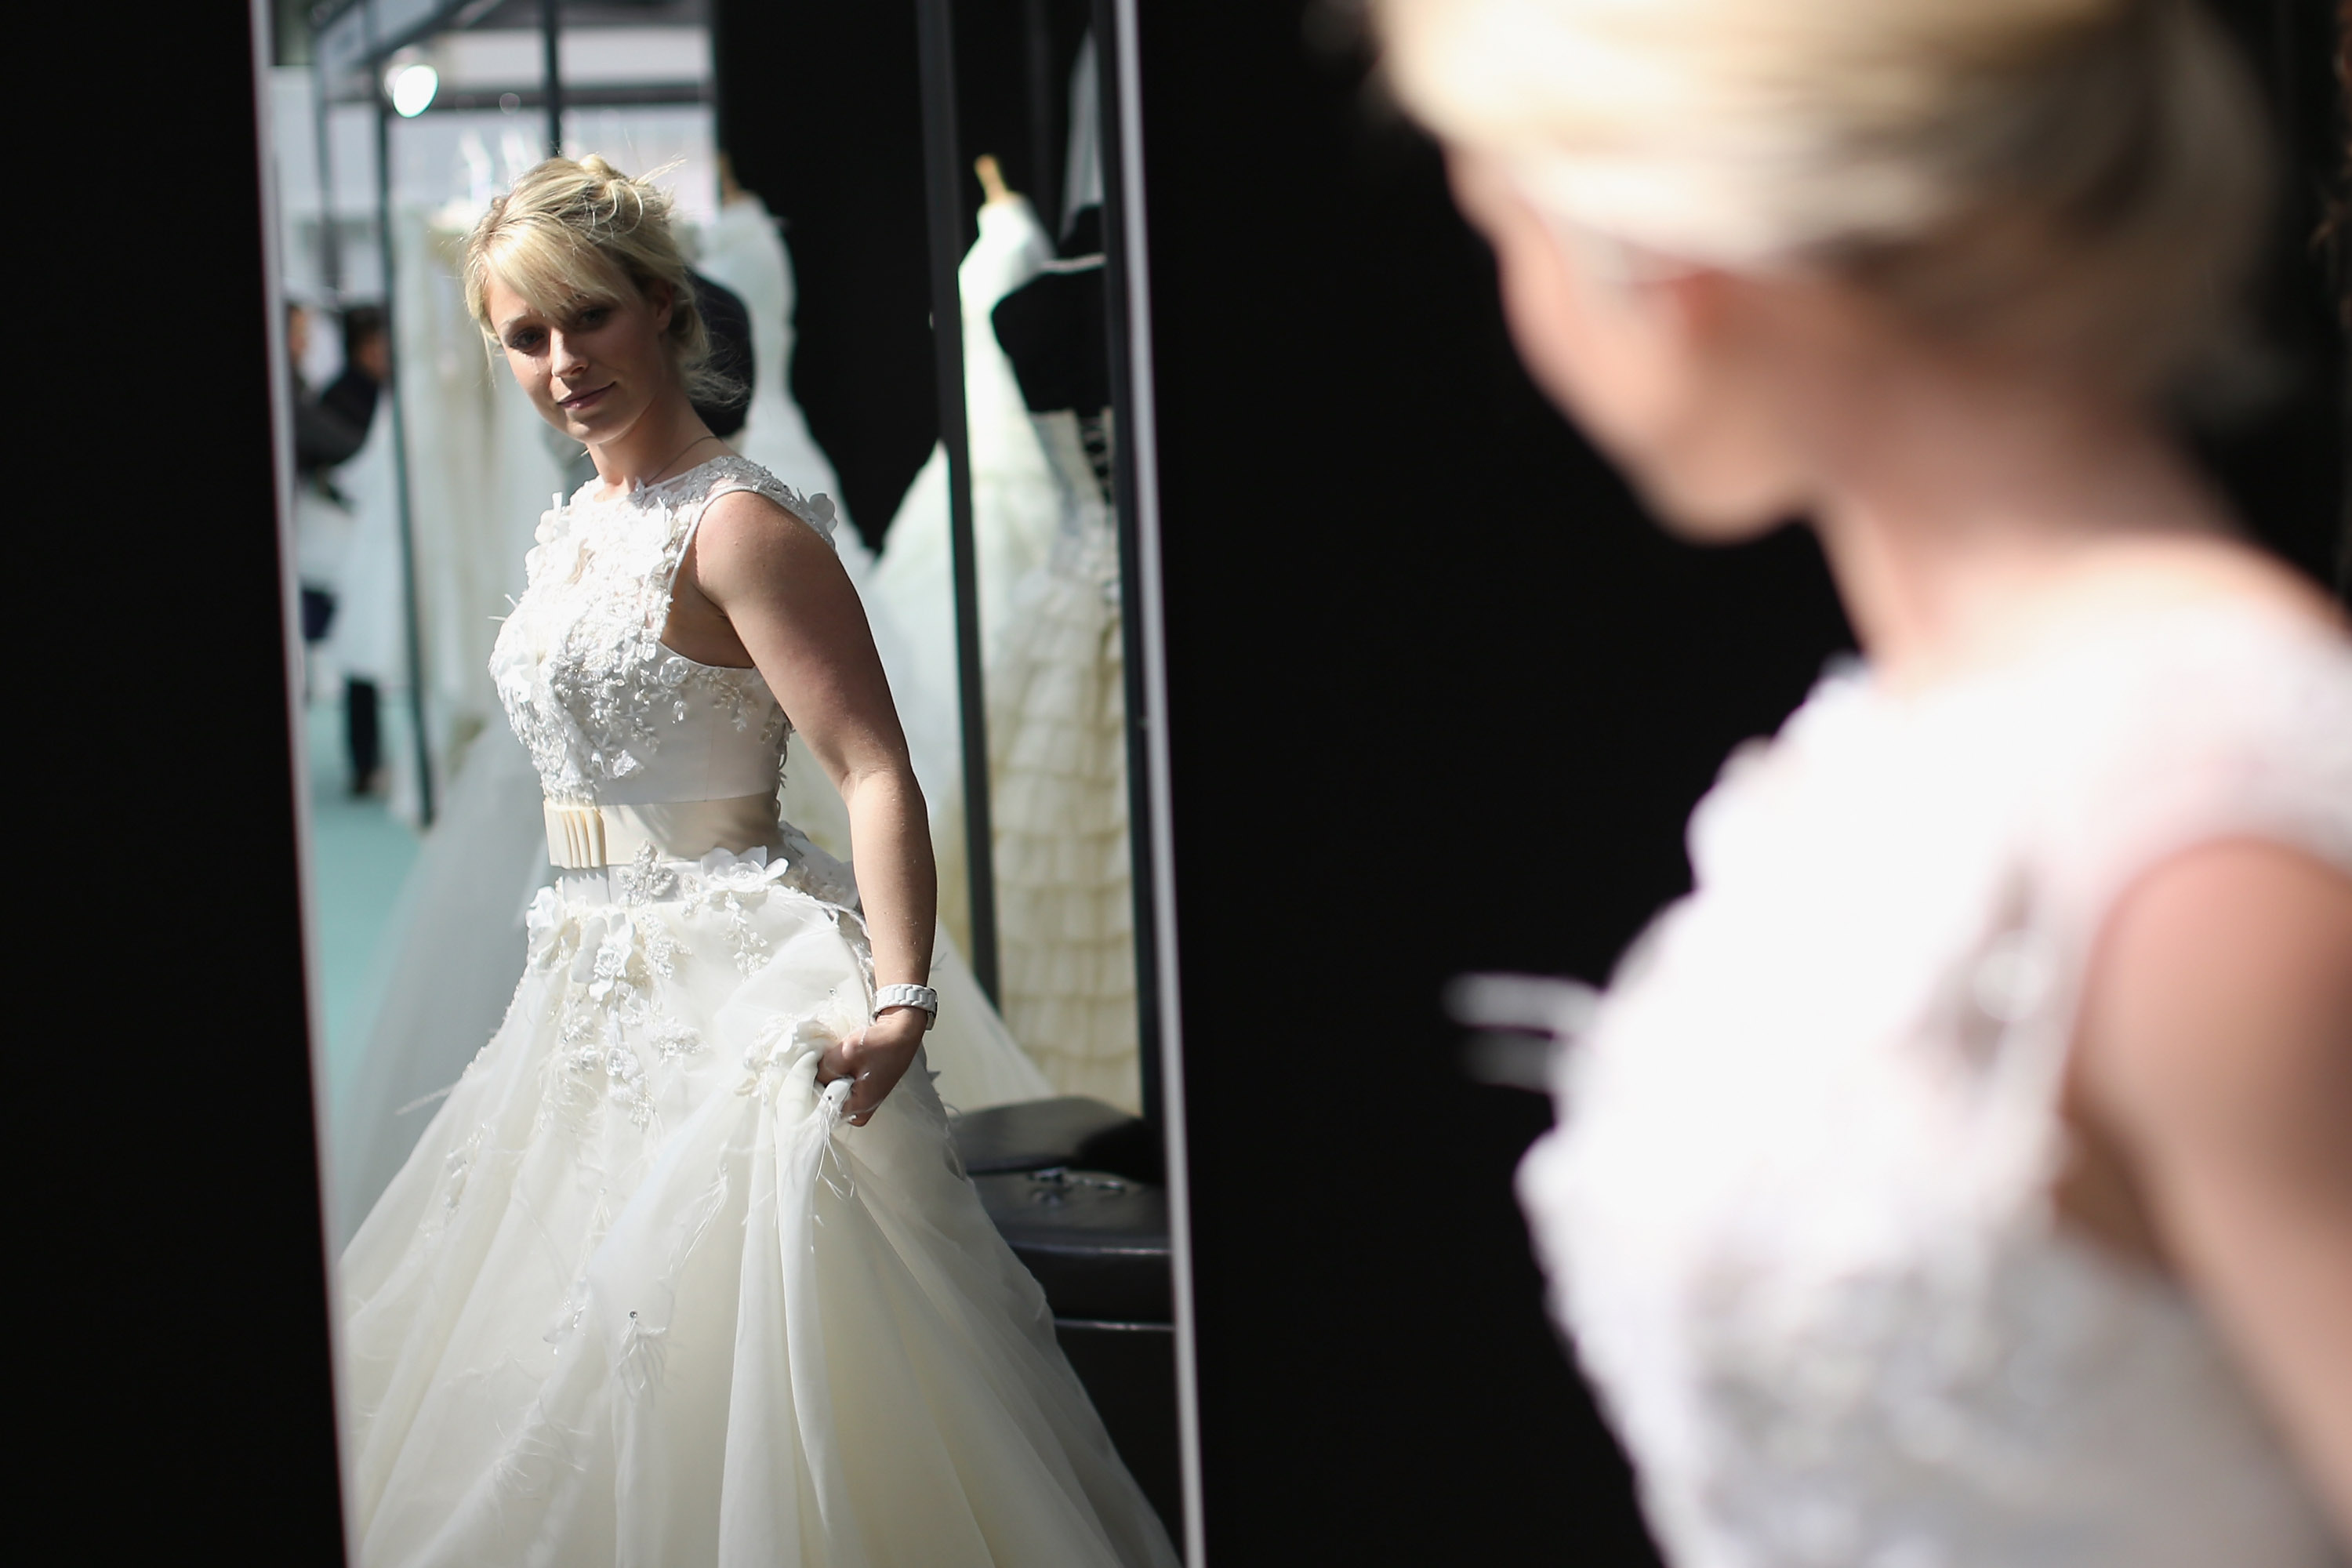 5 Wedding Dresses Made Of Books Ping Bags And Basically Everything Else Except Tulle Lace